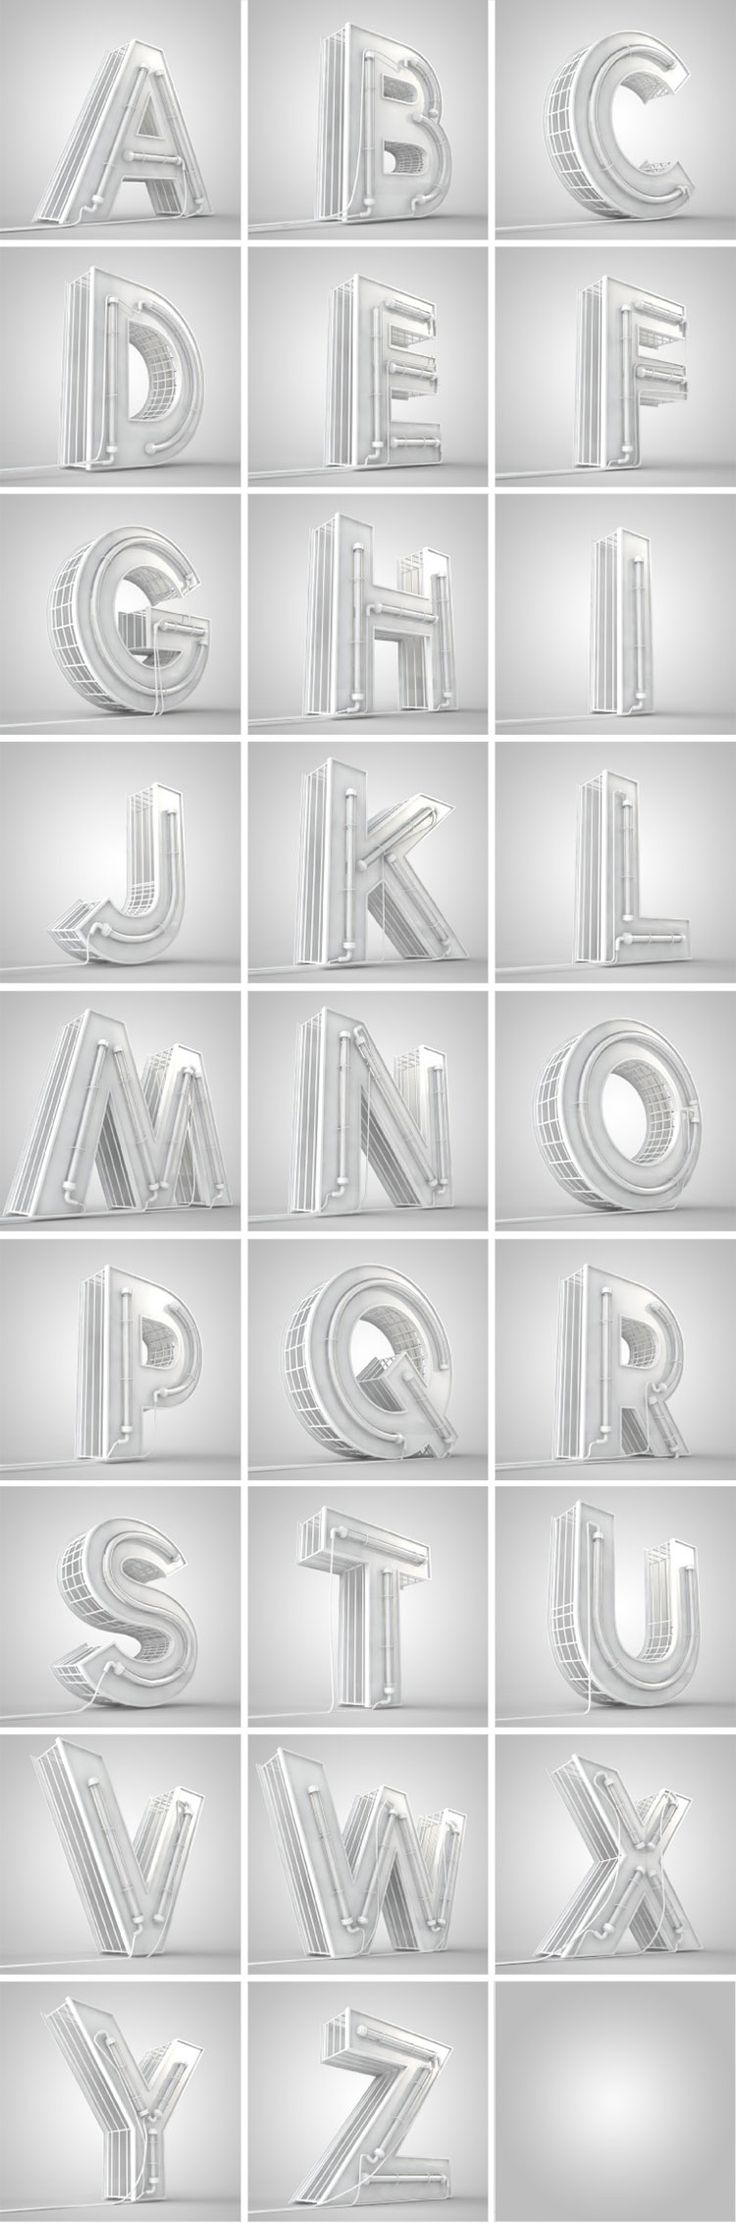 Capital Alphabets 3d model with lights lamptube